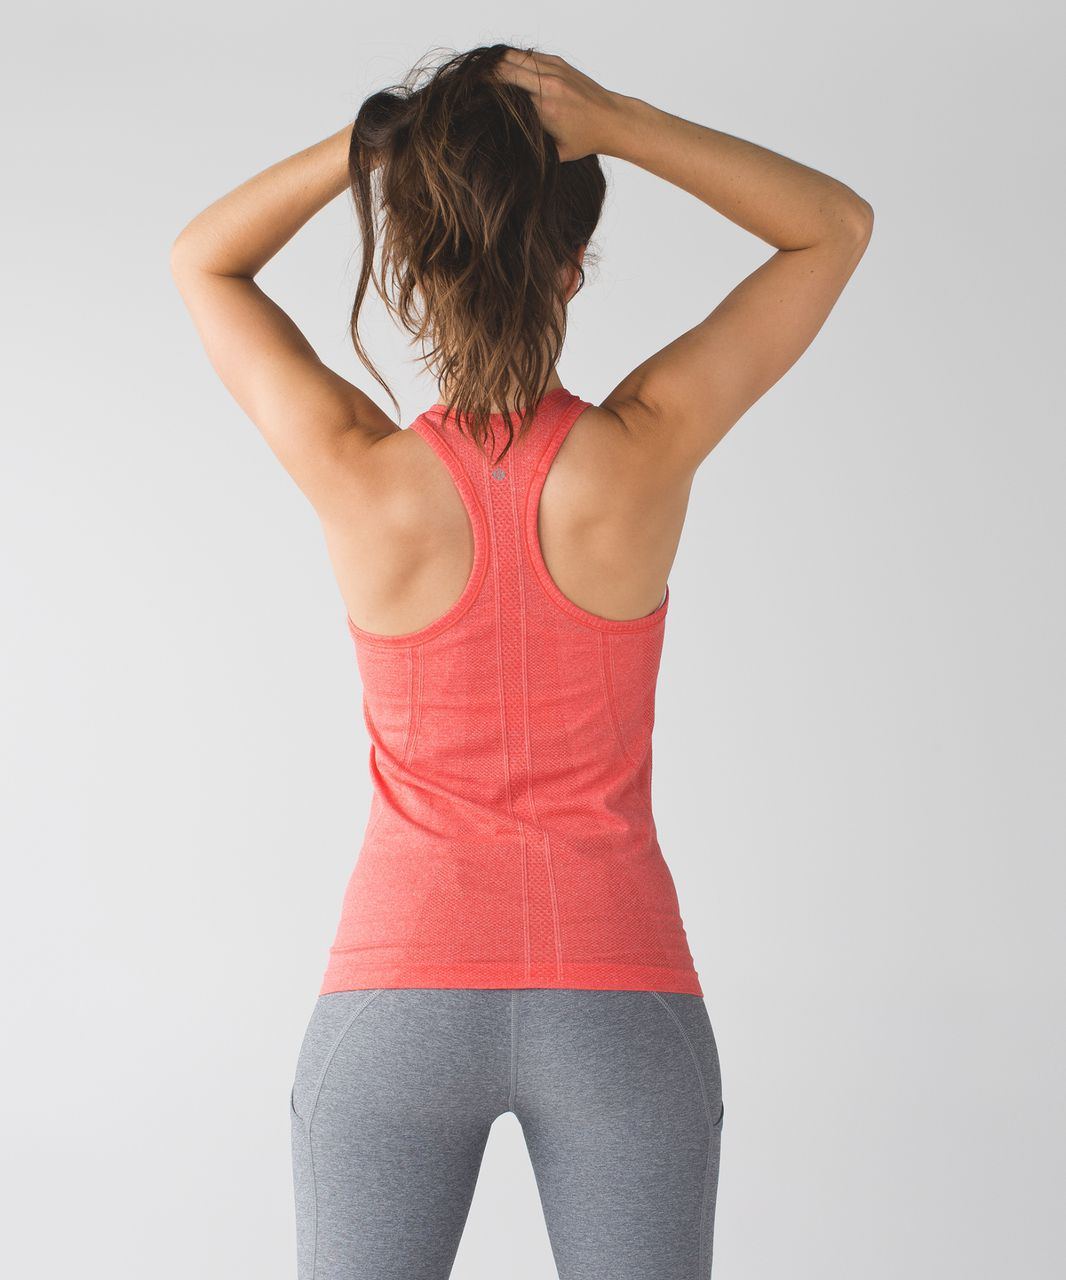 Lululemon Swiftly Tech Racerback (First Release) - Heathered Alarming